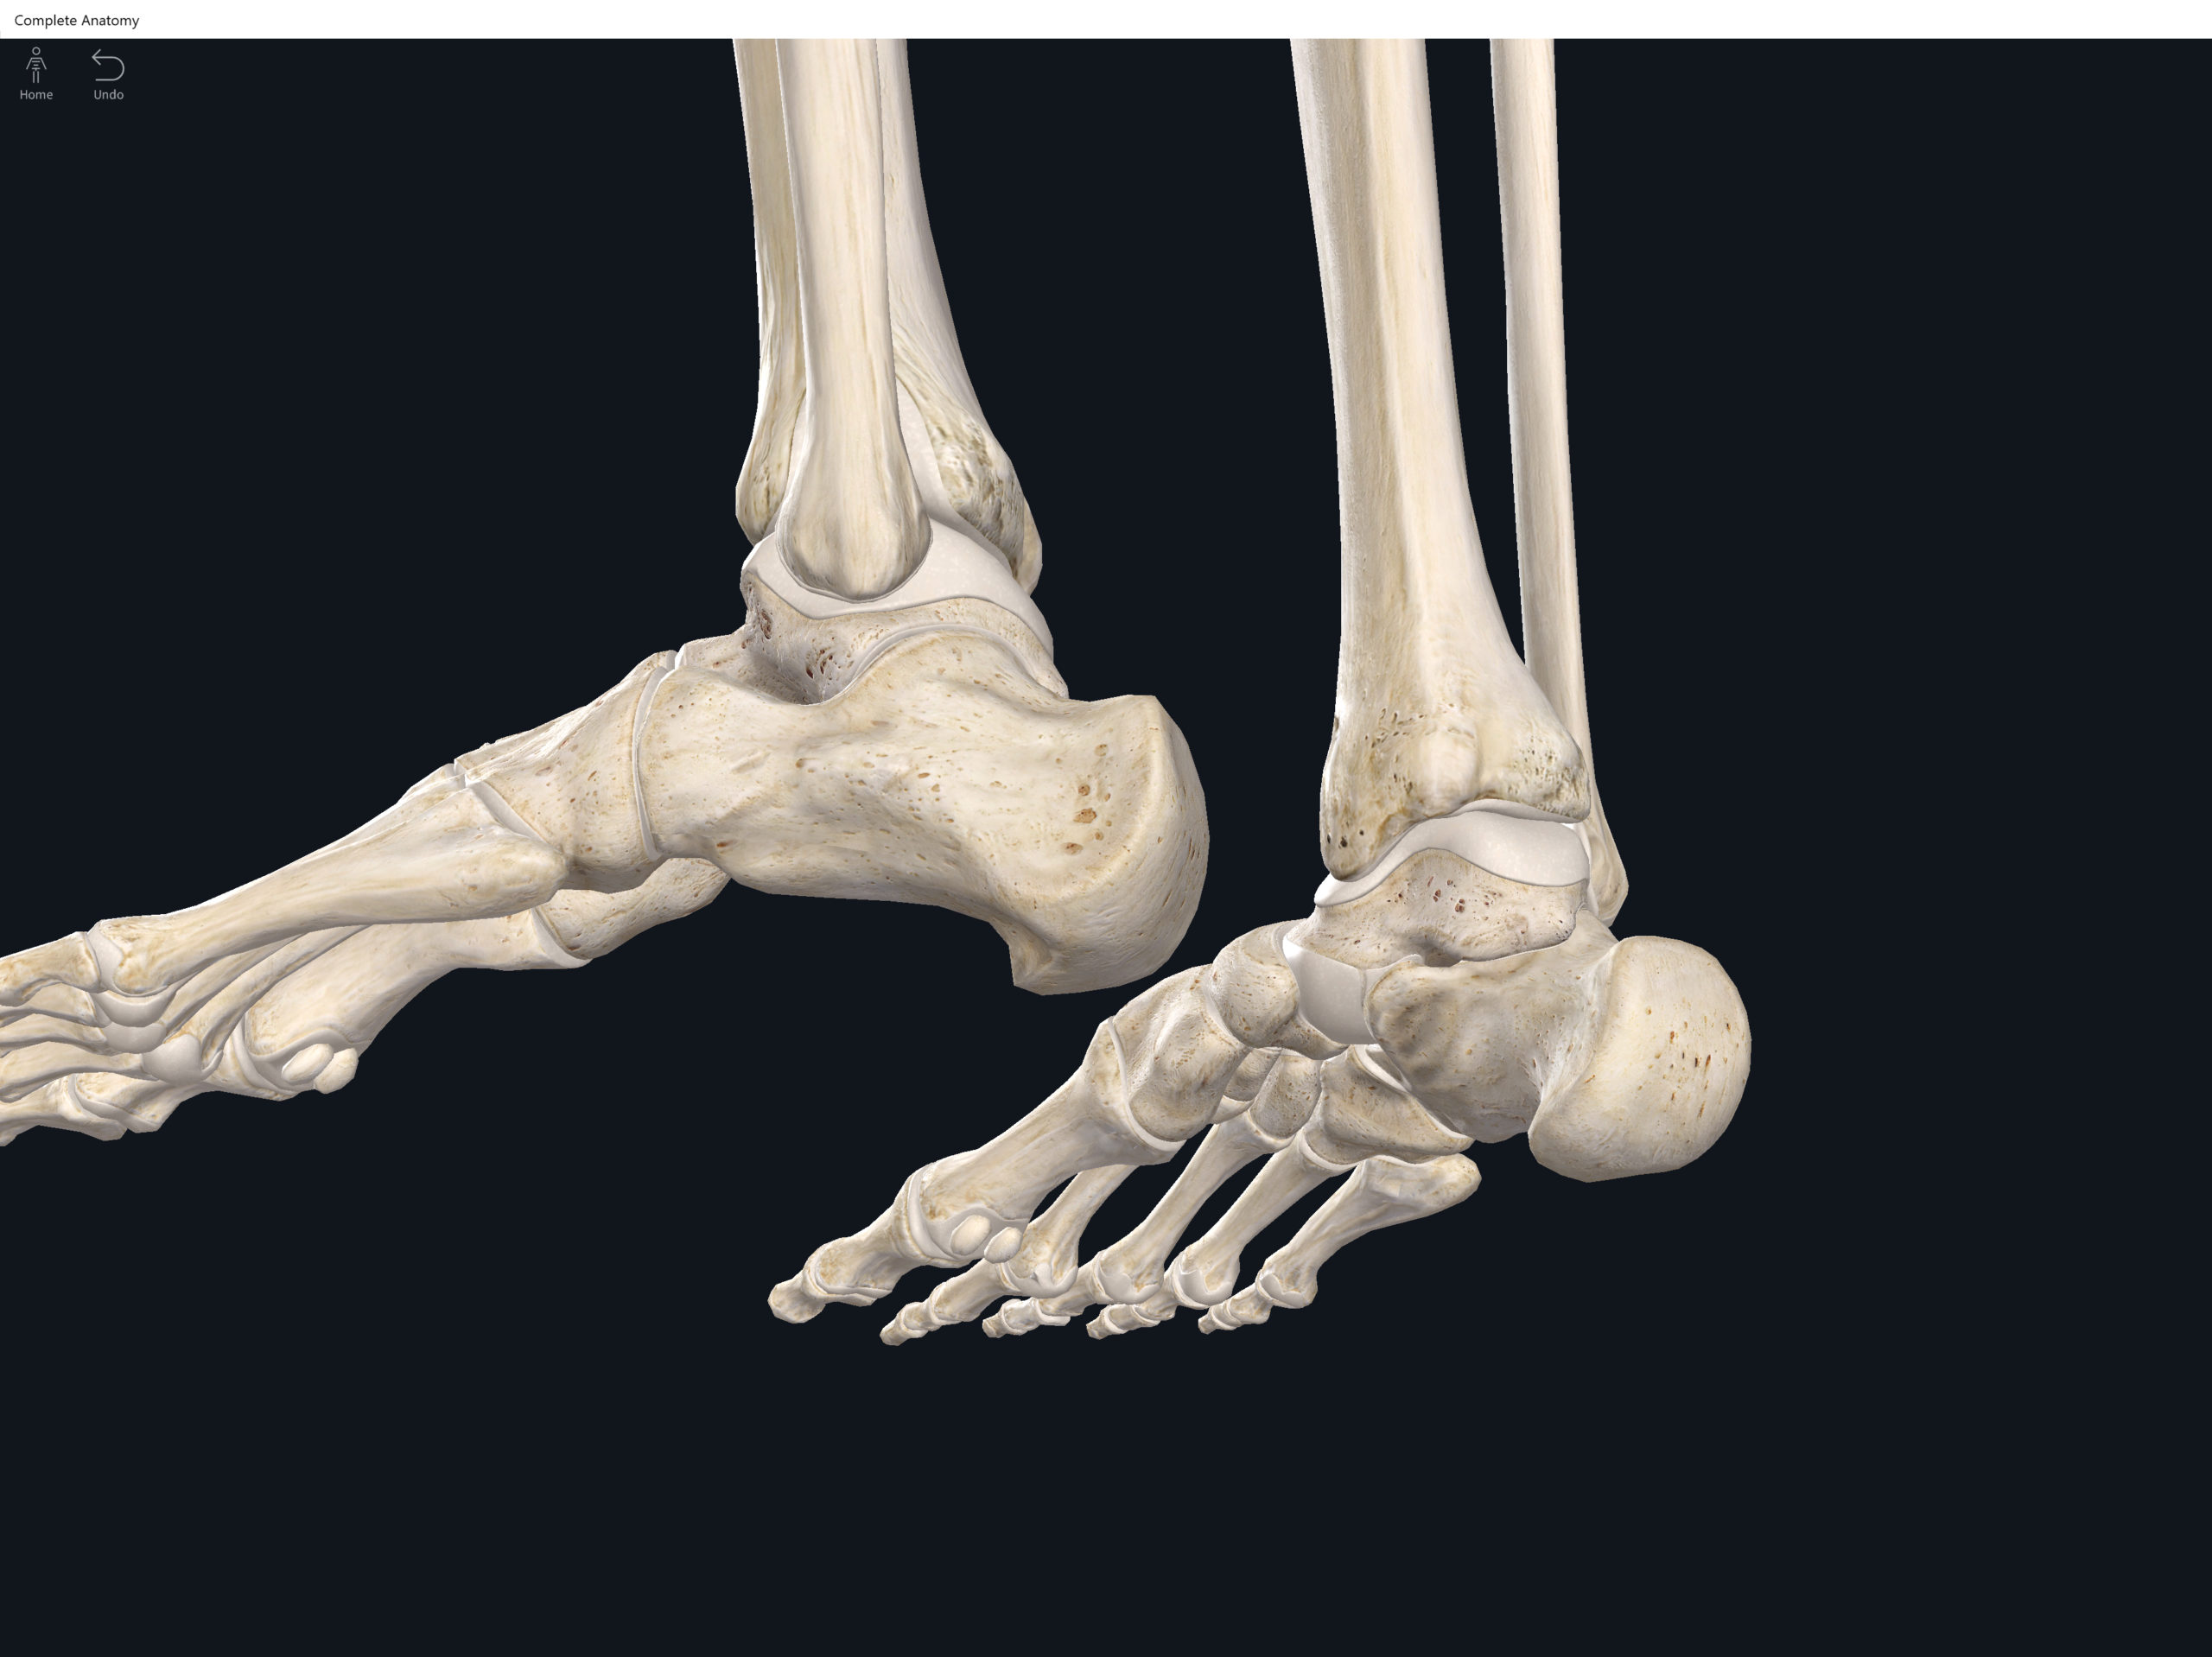 1 U2014 Bony Anatomy Of The Foot And Ankle Manual Guide